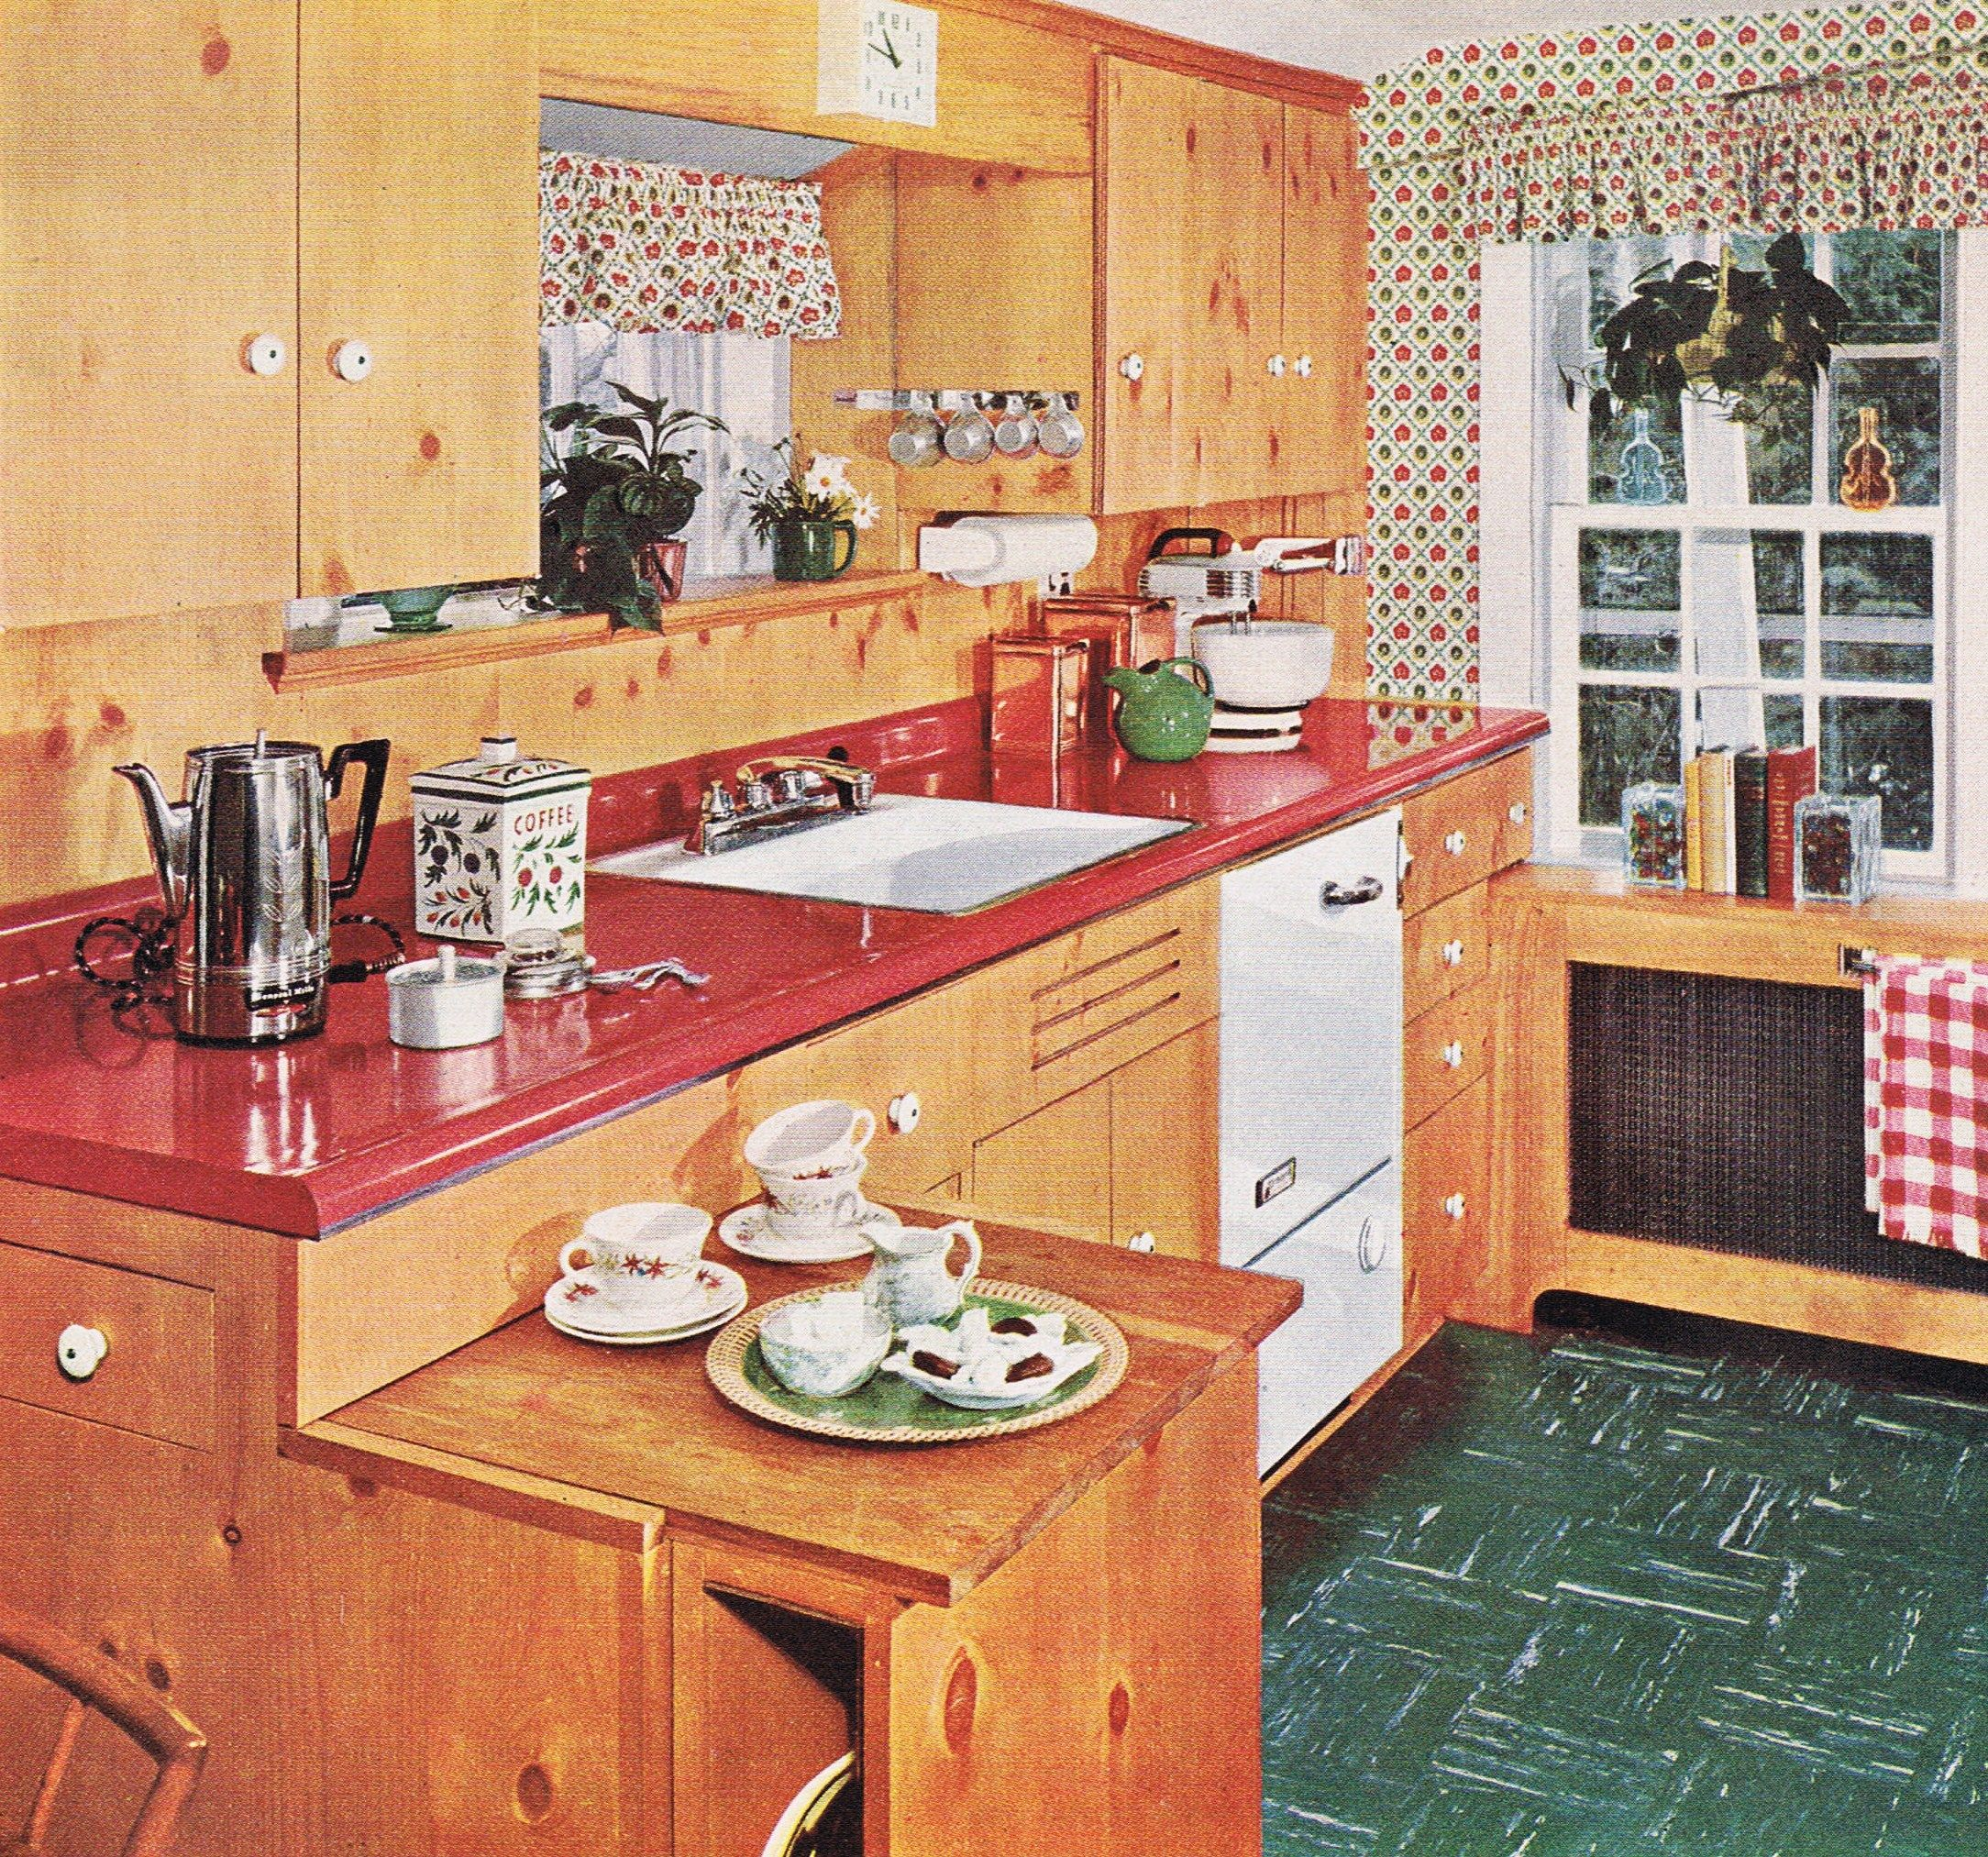 Old Knotty Pine Cabinets: Classic 50's Knotty Pine Kitchen